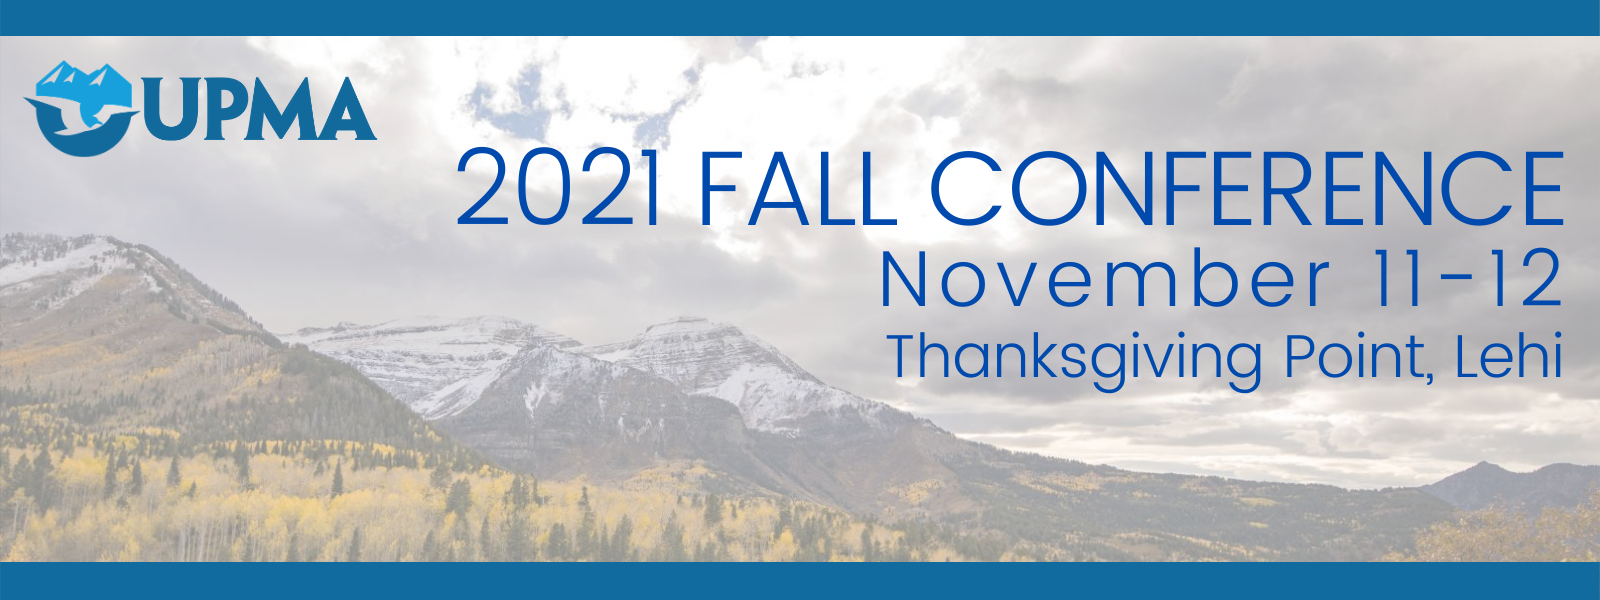 UPMA 2021 FALL CONFERENCE Save the Date Banner.png